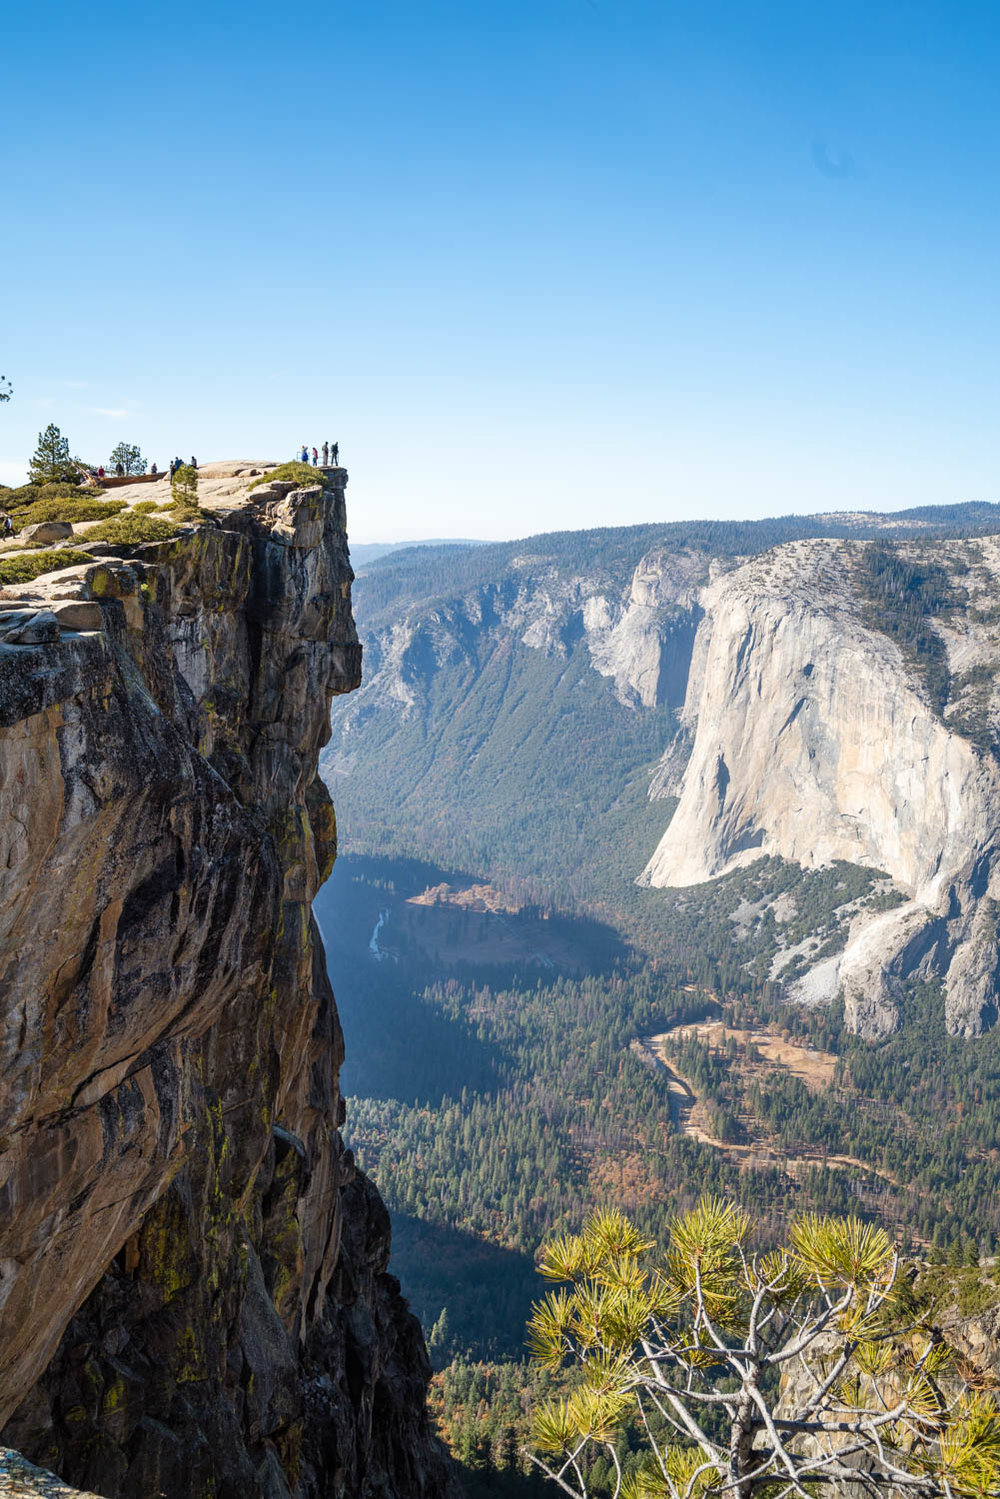 taft-point-fissures-yosemite-hike-305602.jpg